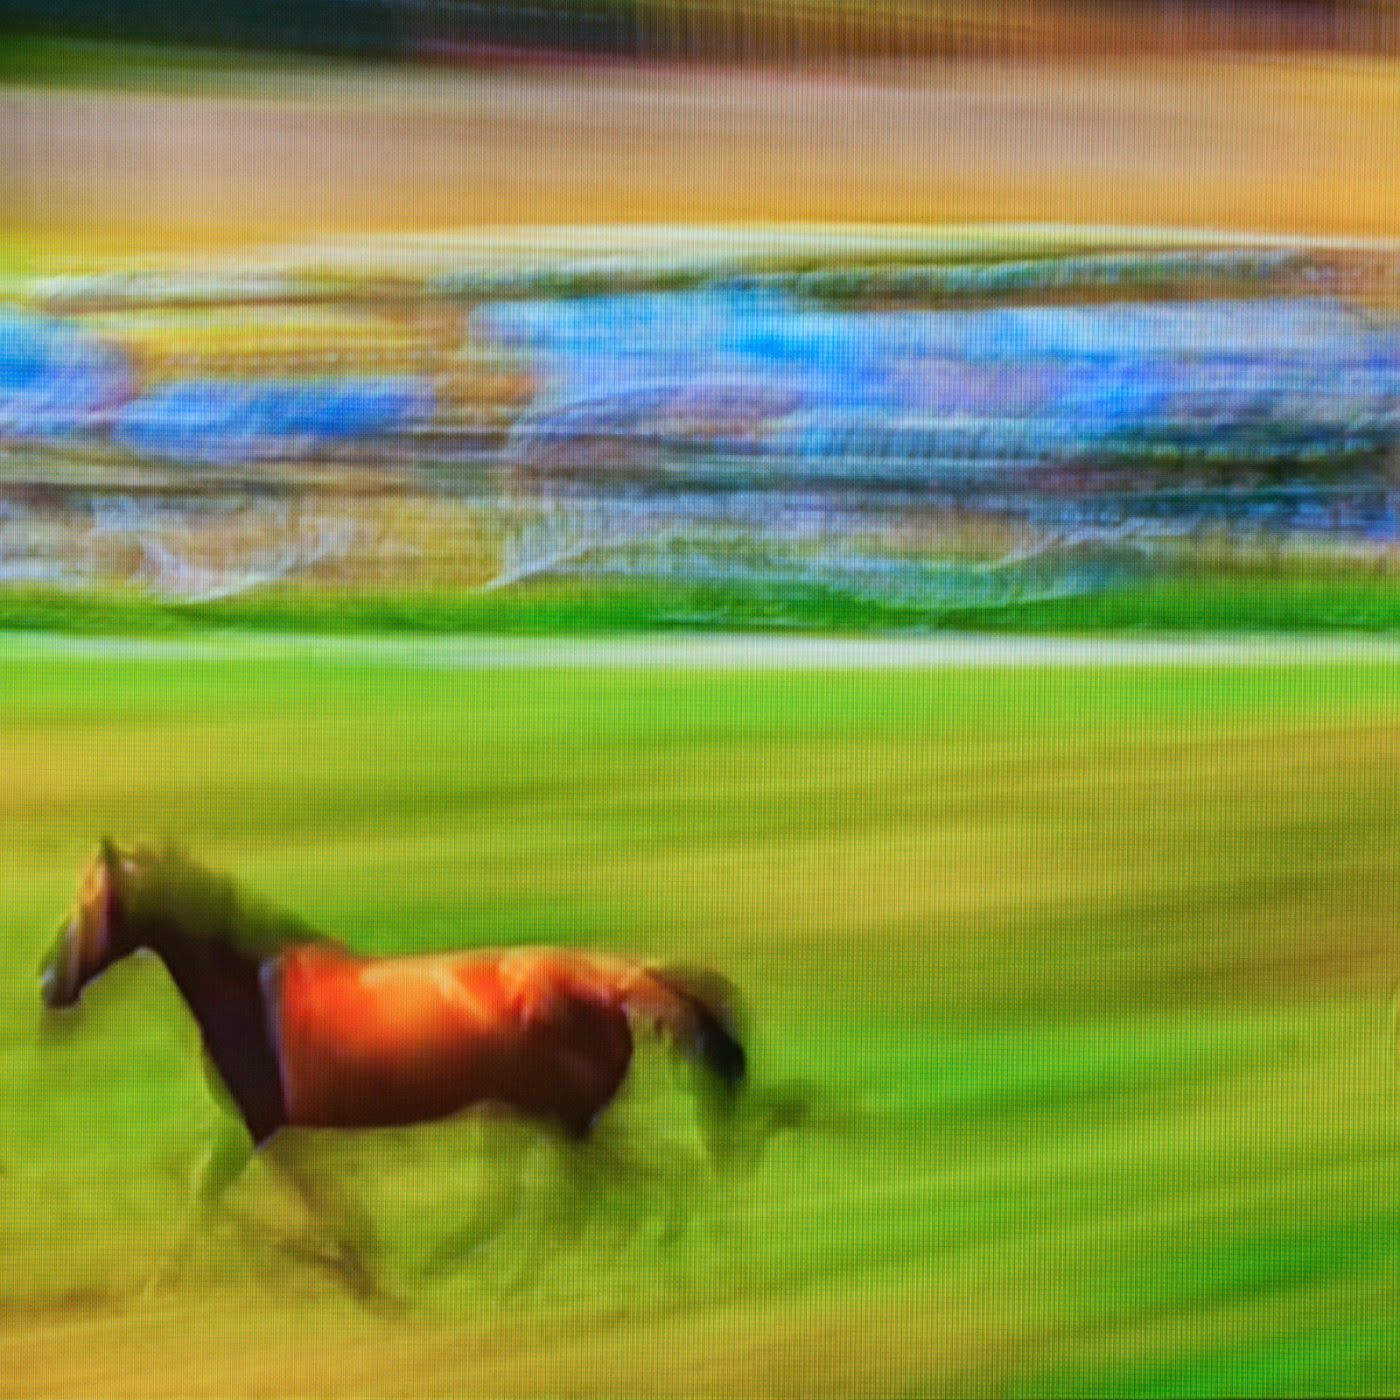 le tour de france, motion blur, blur, abstract, abstraction, tim macauley, photographic art, you won't see this at MoMA, appropriation, found imagery, le tour 2014, tv footage, portrait, timothy Macauley, the light monkey collective, grand cycling tour, horses